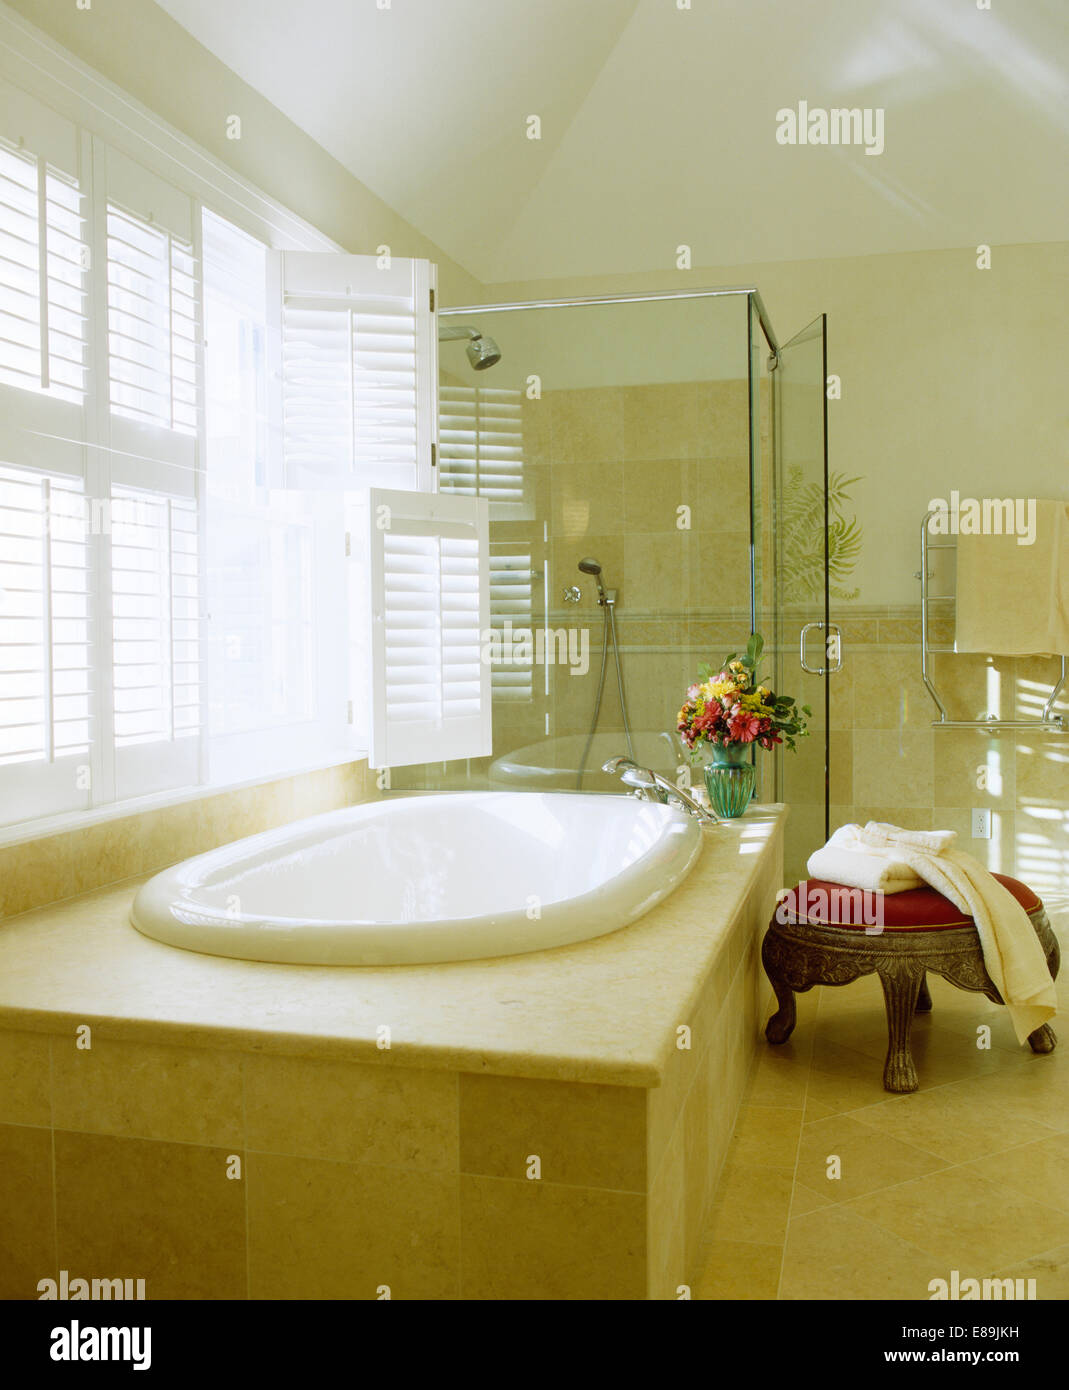 Plantation Shutters On Window Above Bath With Tiled Paneling